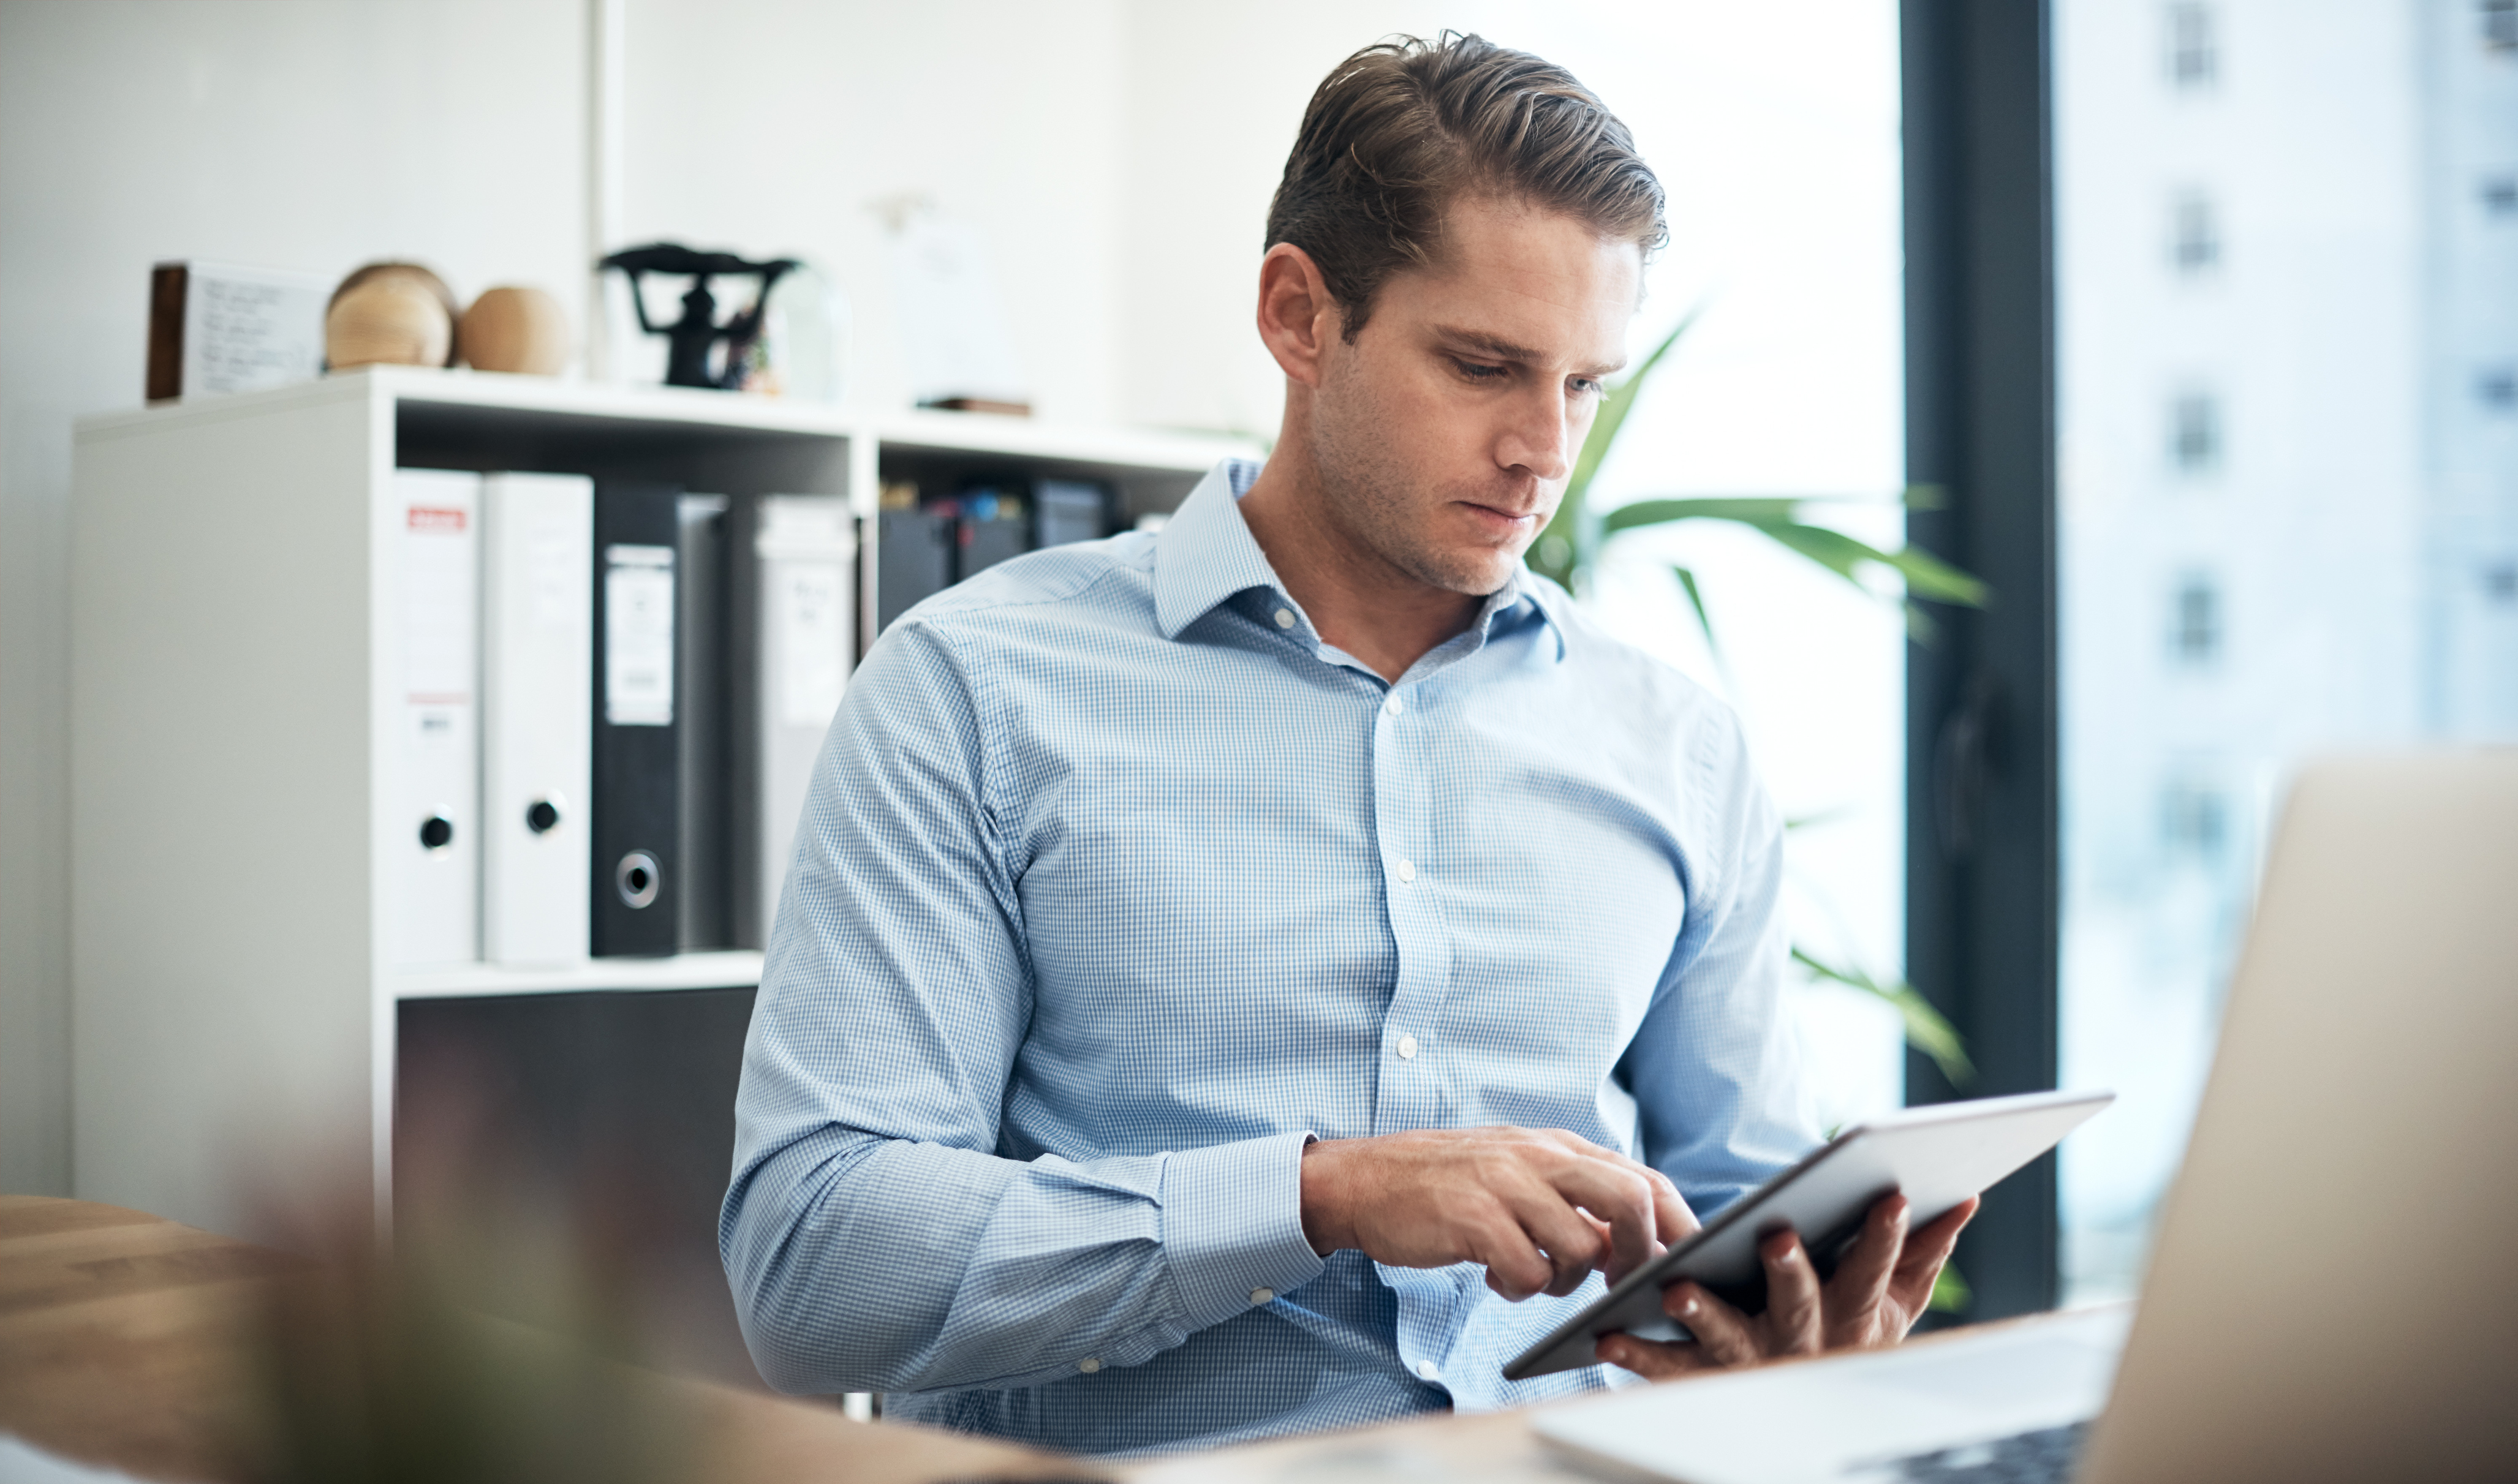 Young business man filling out survey on tablet